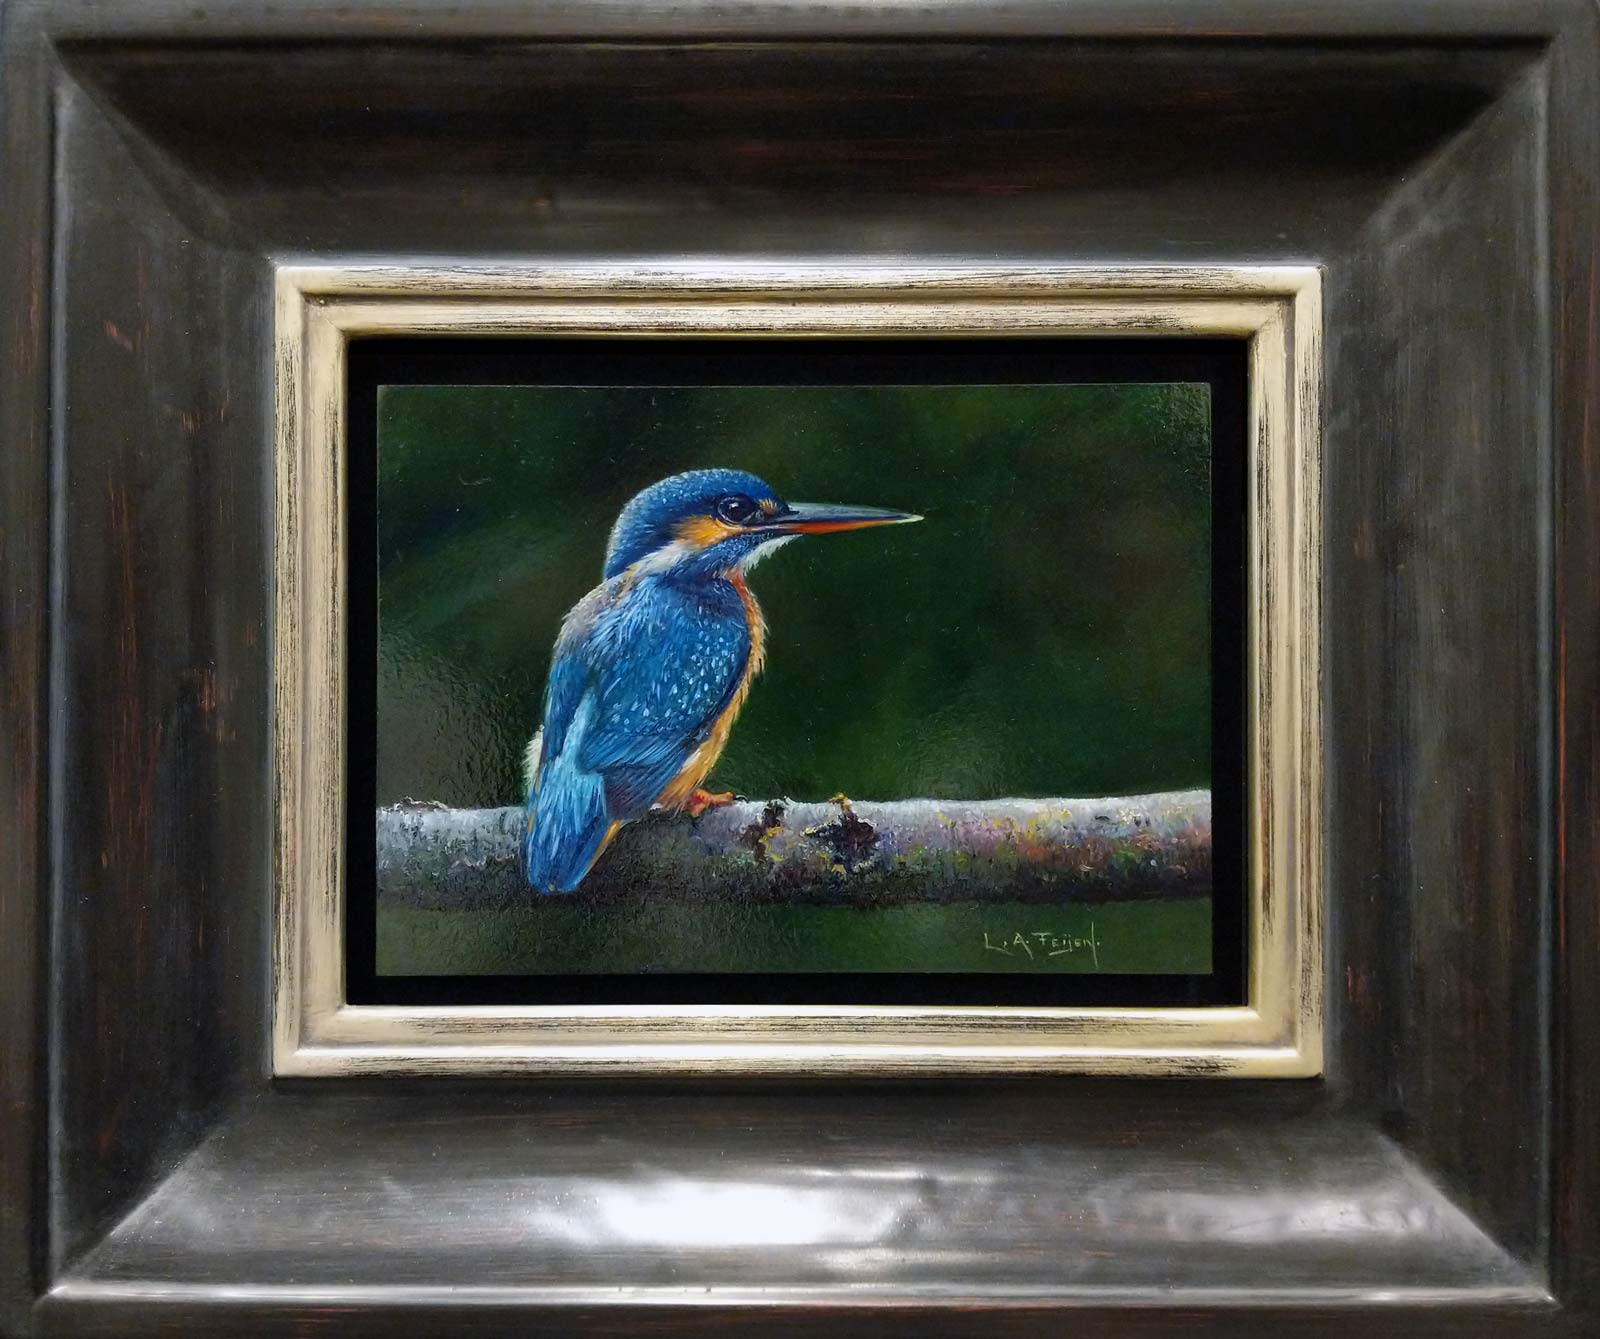 The Kingfisher, Lion Feijen